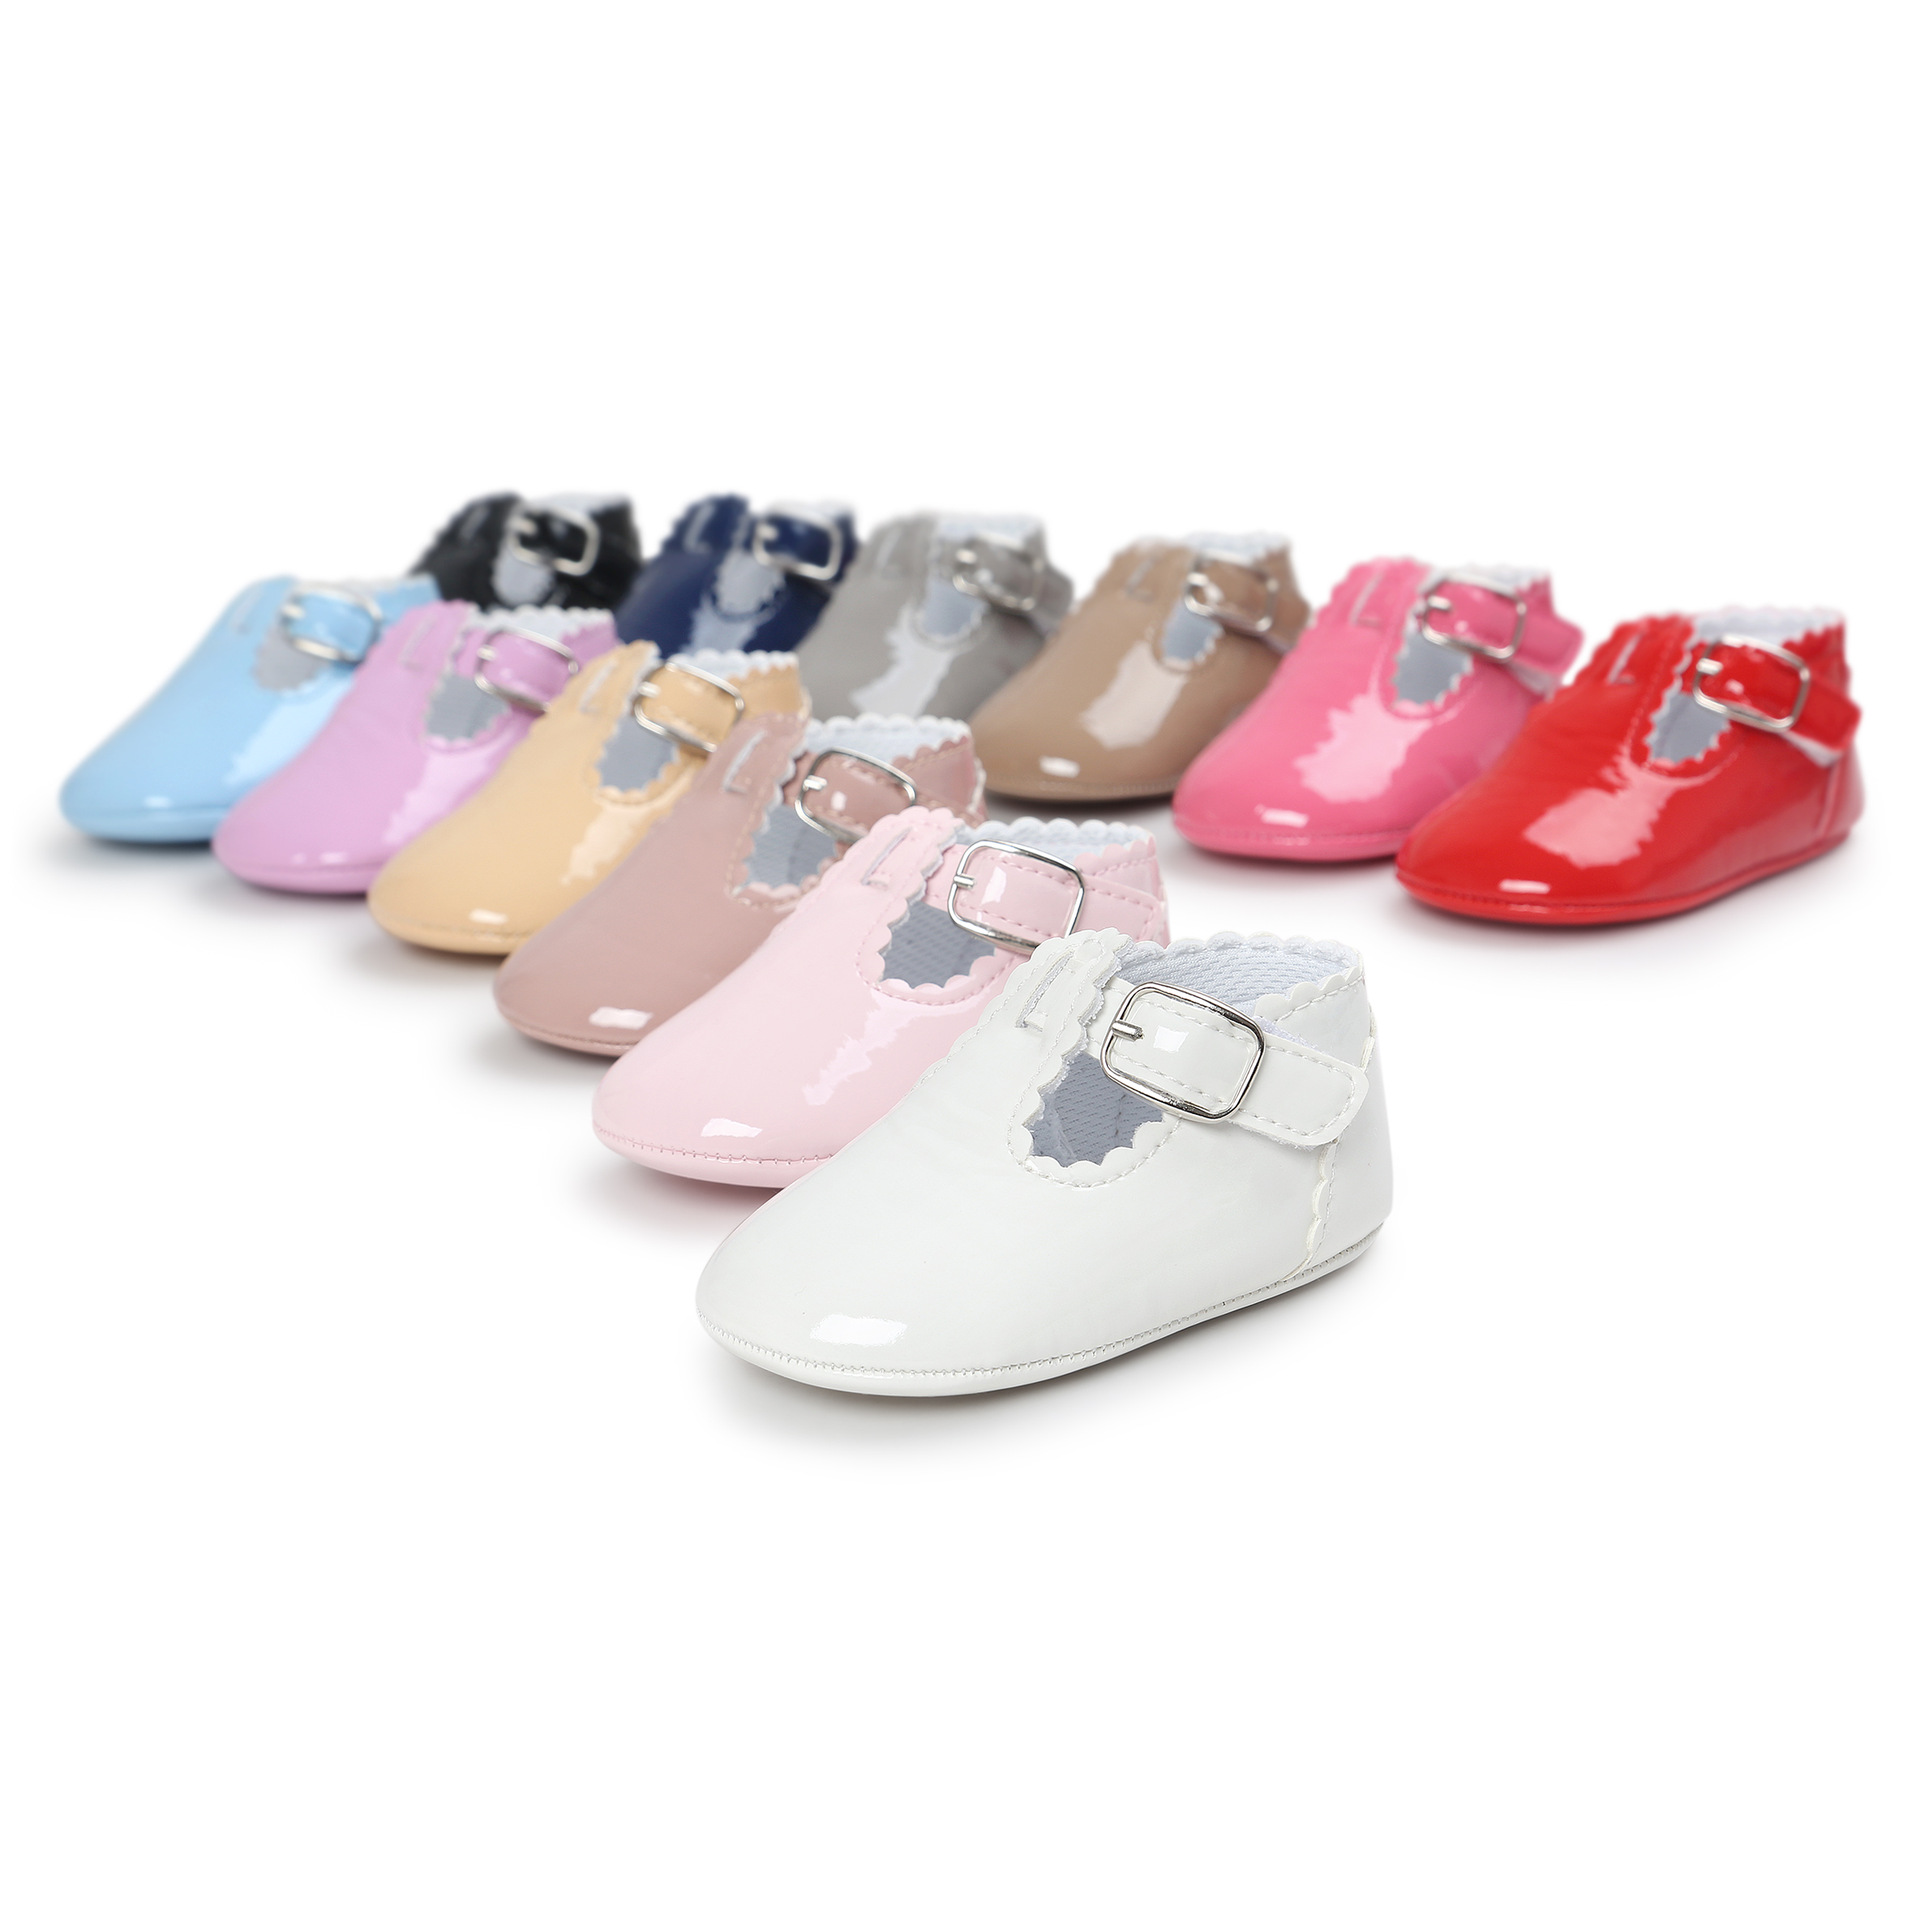 PU Leather Newborn Baby Boy Girl Baby Moccasins Soft Moccs Shoes Bebe Fringe Soft Soled Non-slip Footwear Crib Shoes CX42C